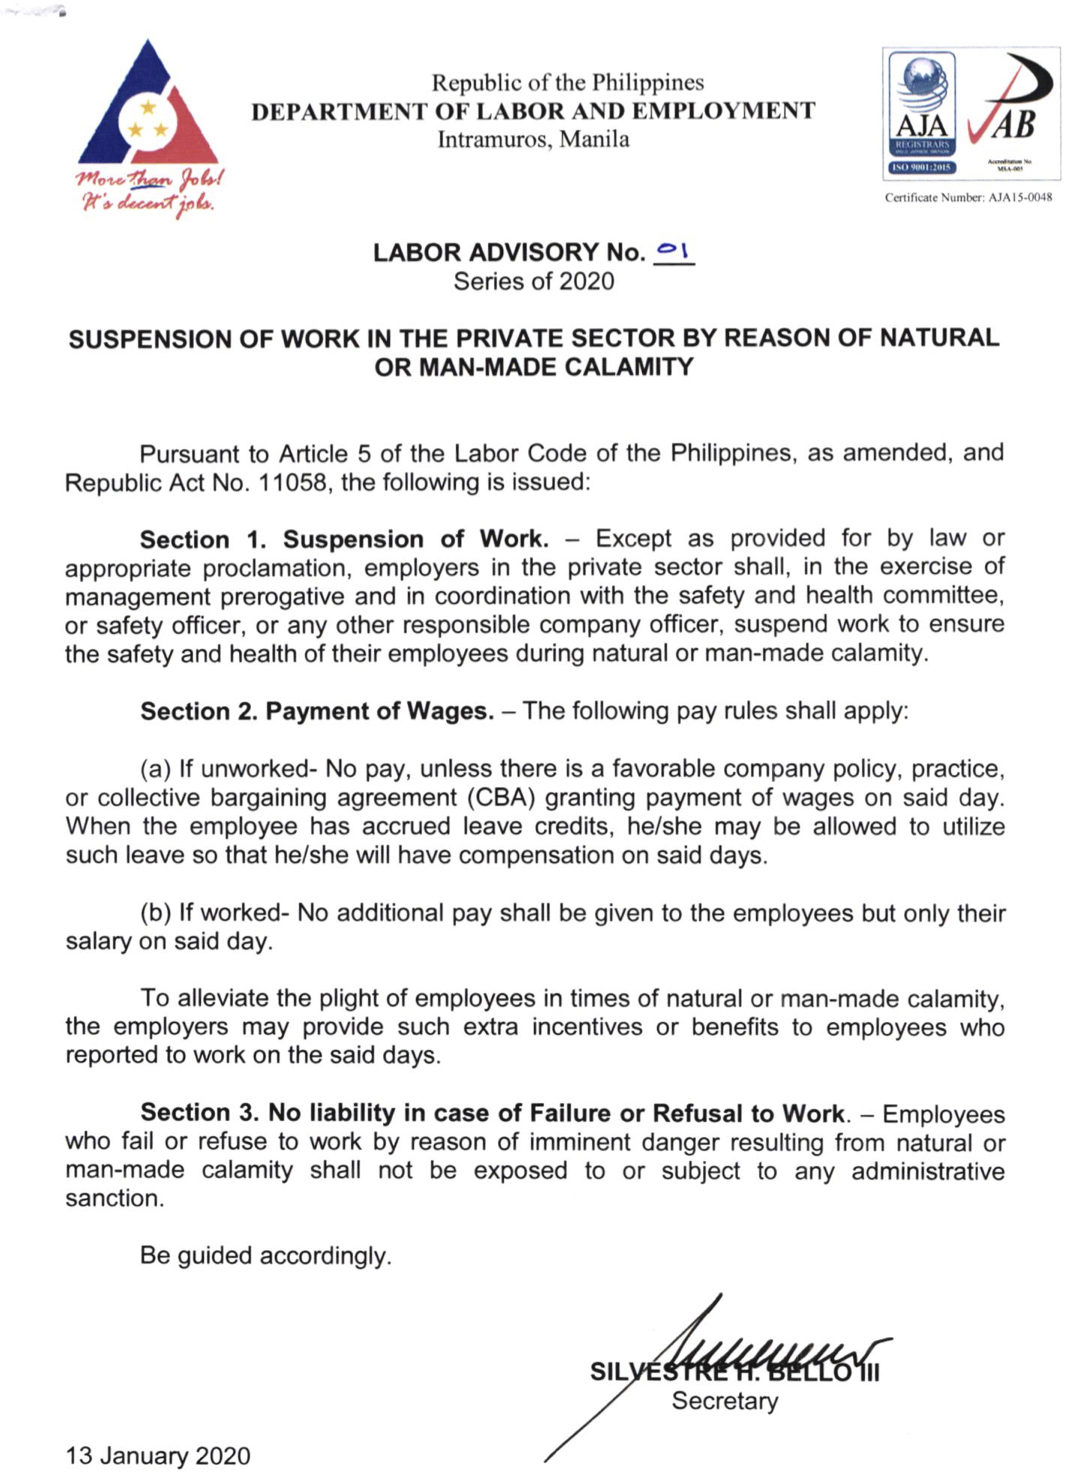 DOLE Advisory on Private Work Suspension